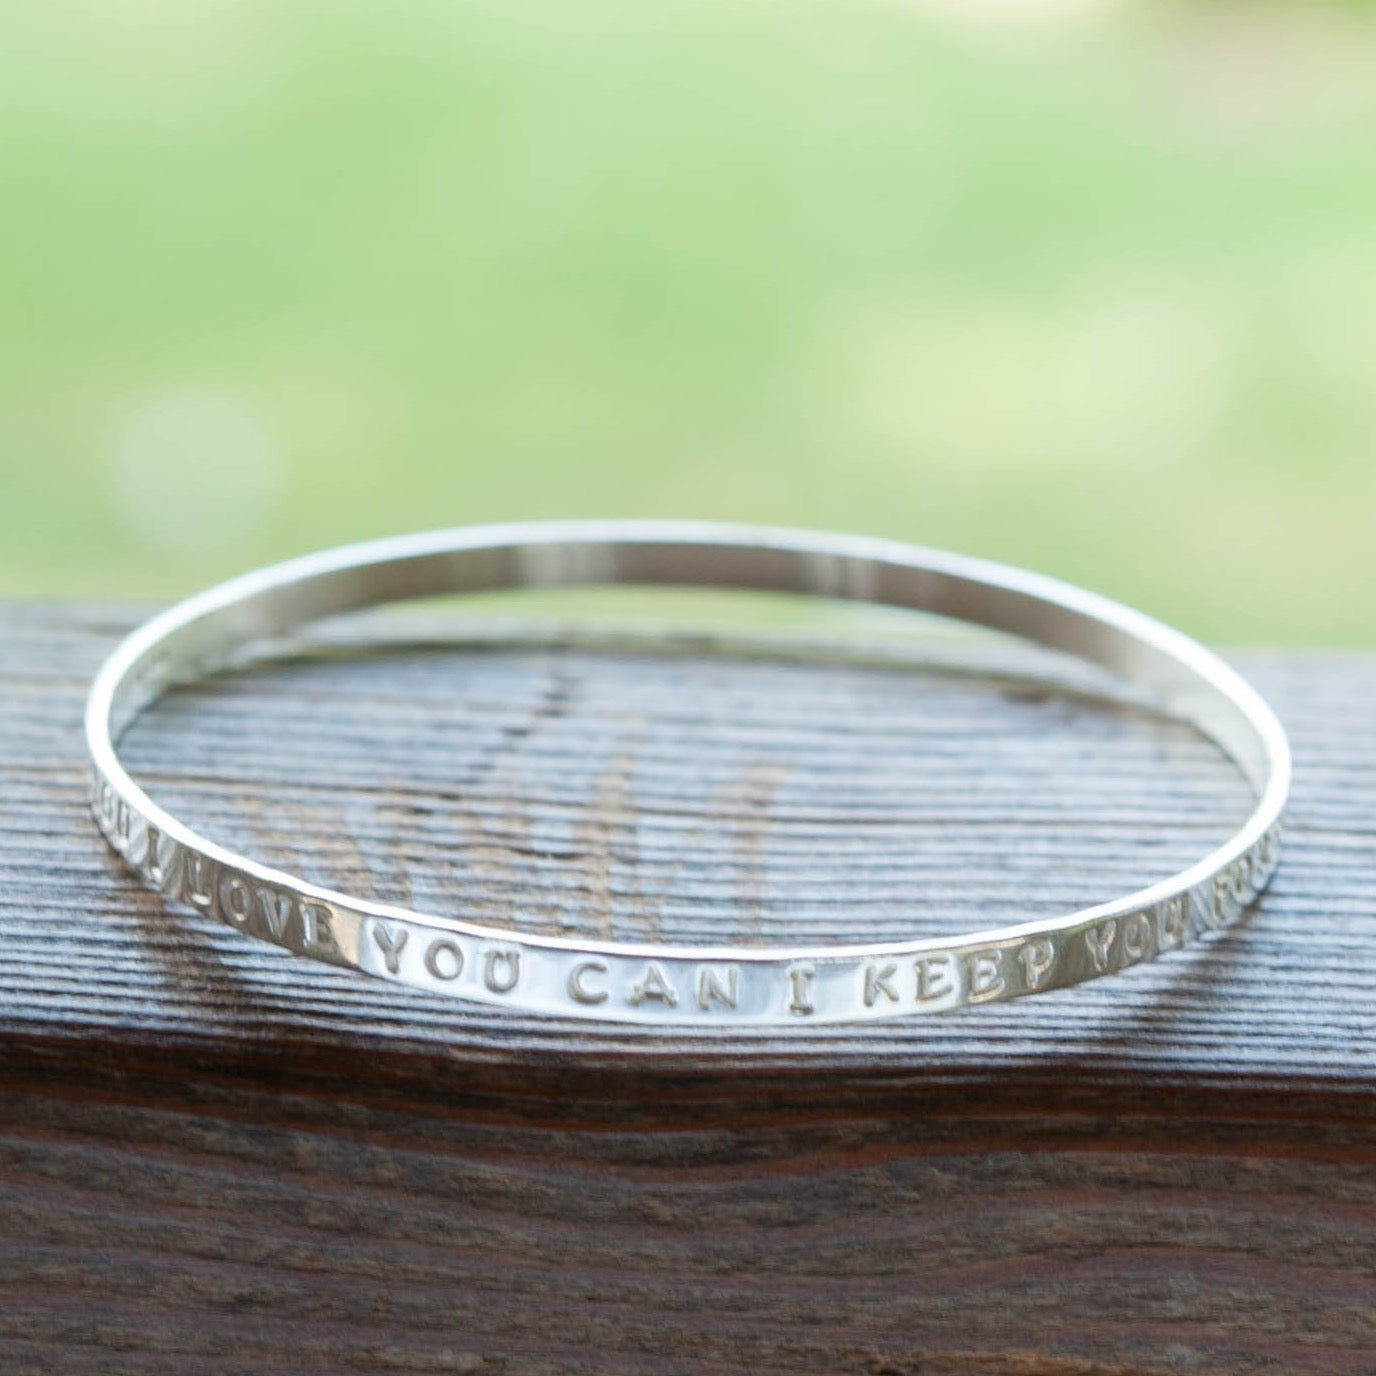 engraved silver message bangle with a quote about love